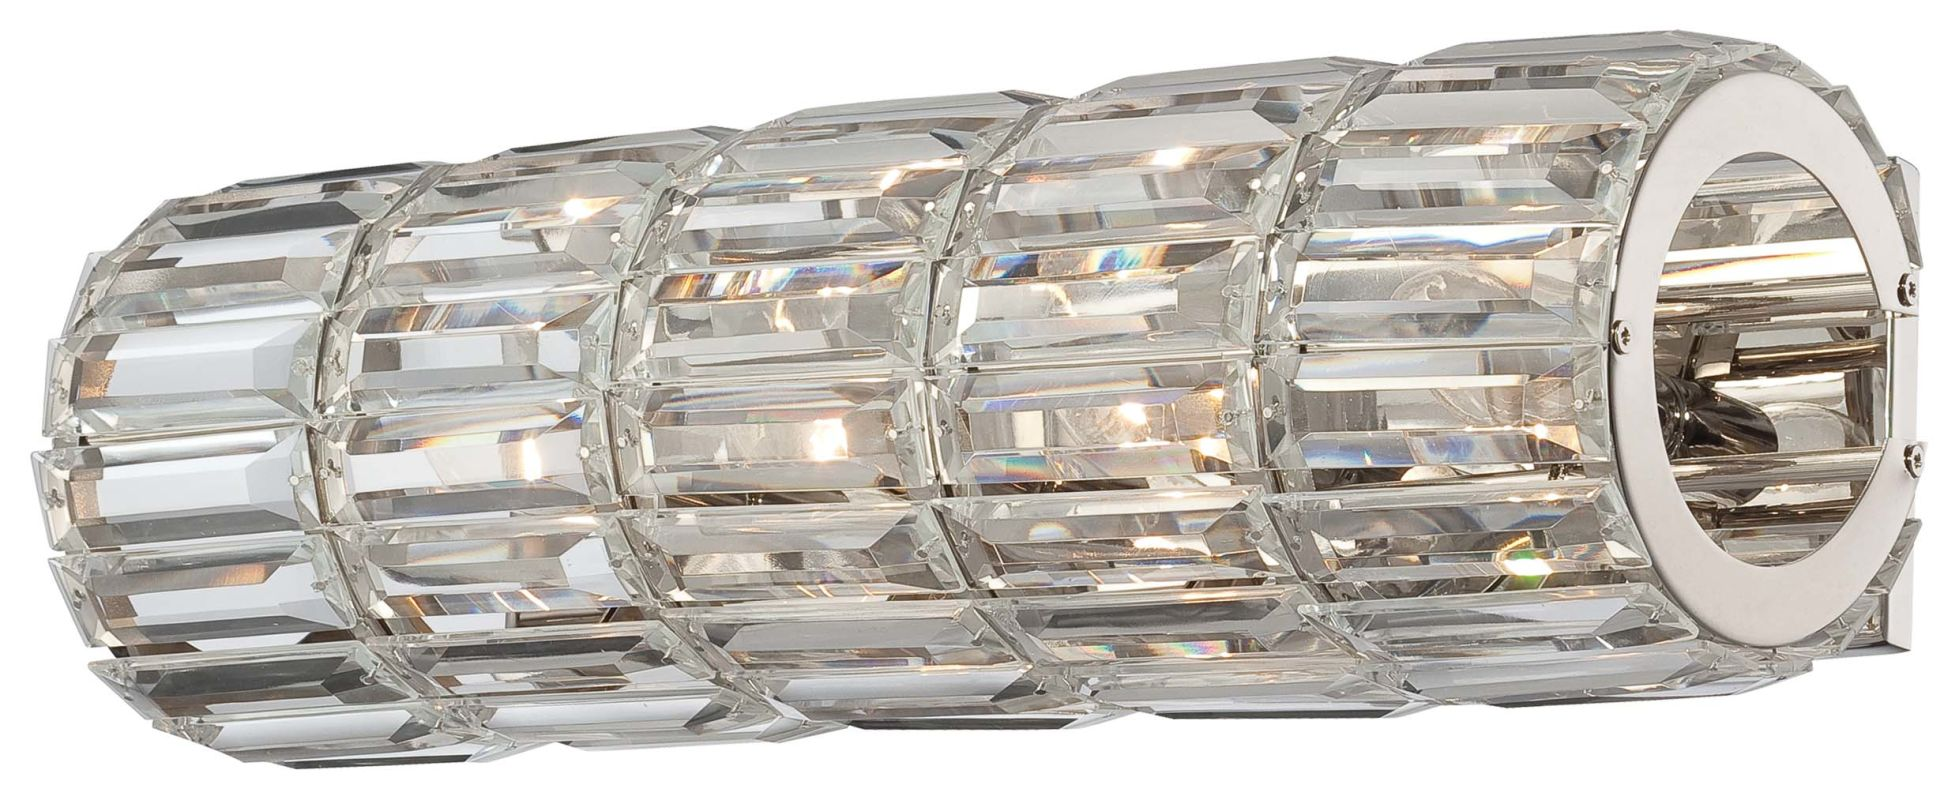 Metropolitan N6284-613 4 Light Wall Sconce from the Crysalyn Falls